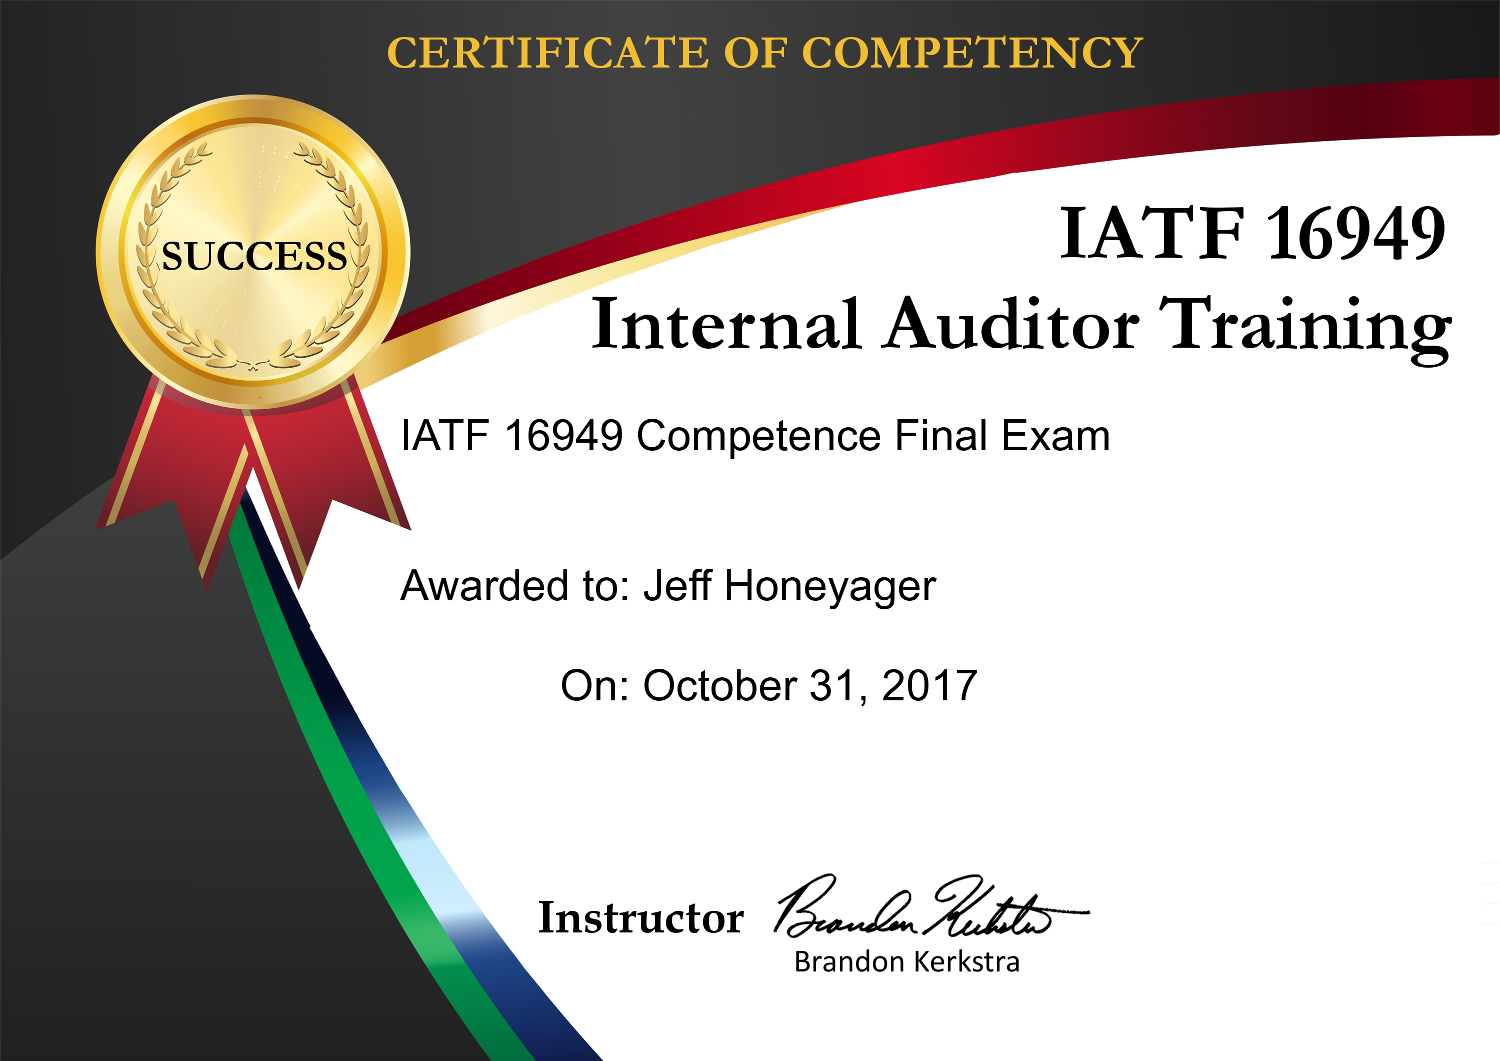 IATF Internal Auditor Competency Sample Certificate